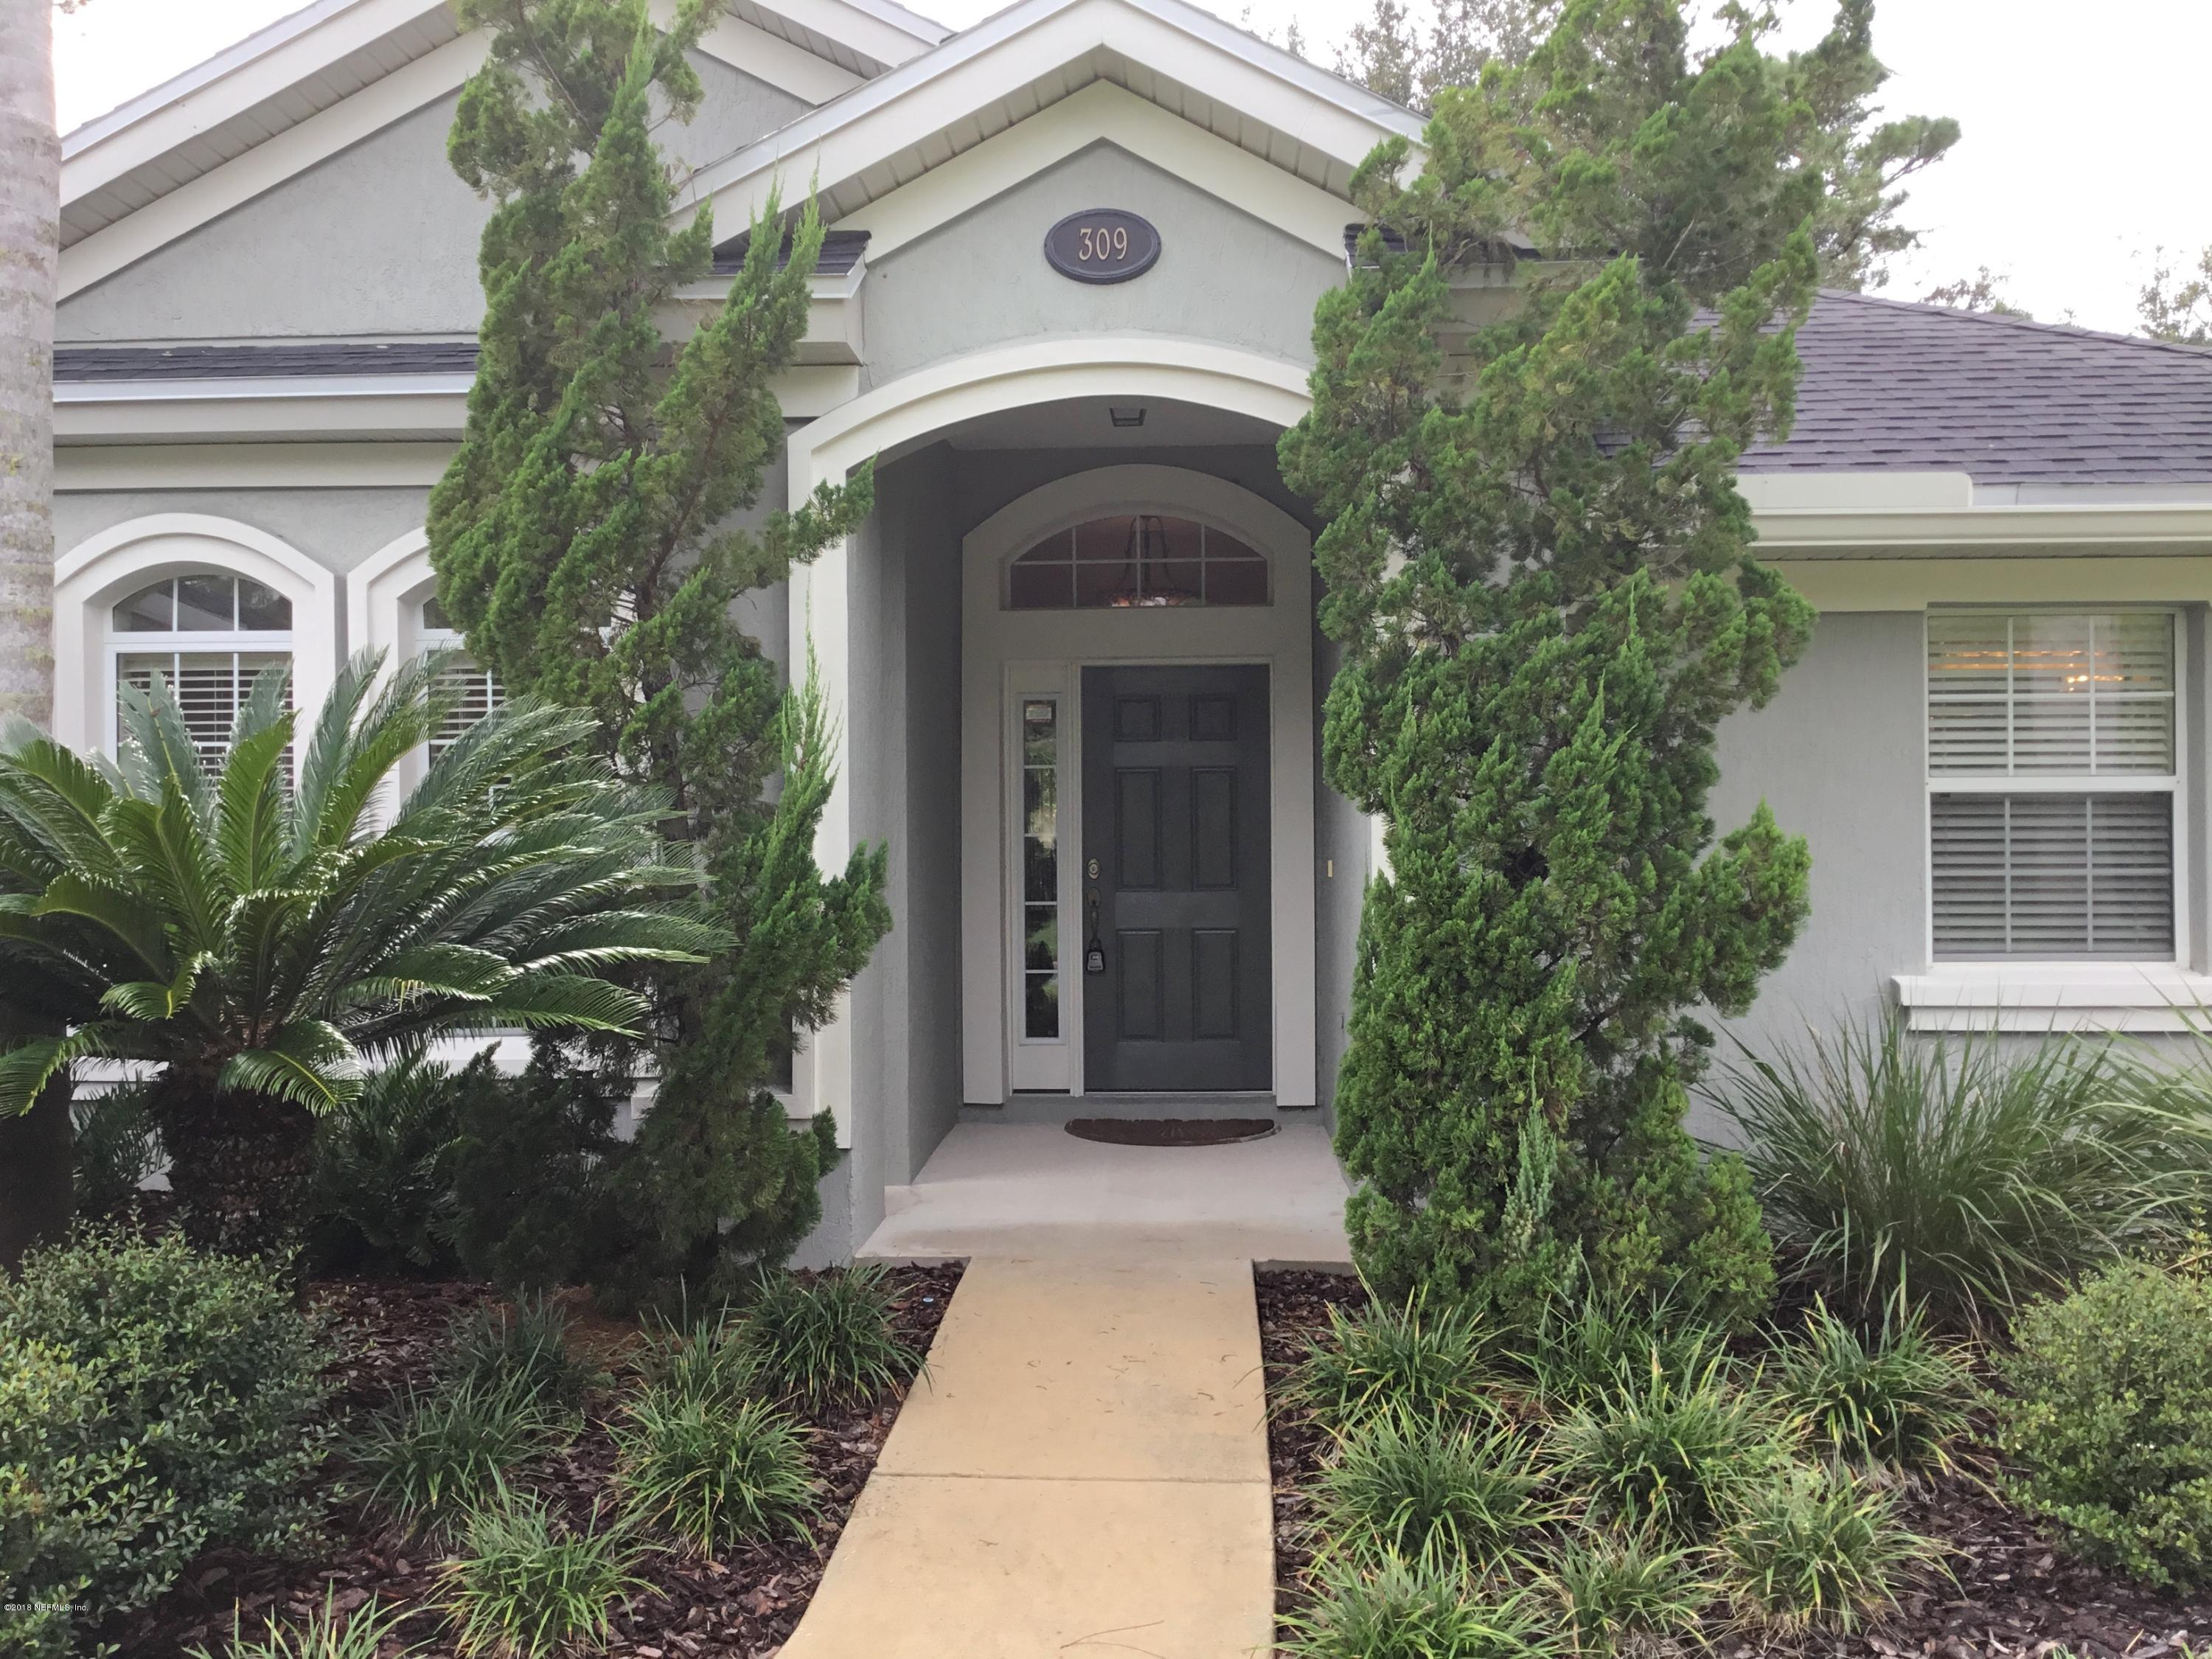 309 POINT PLEASANT, ST AUGUSTINE, FLORIDA 32086, 3 Bedrooms Bedrooms, ,3 BathroomsBathrooms,Residential - single family,For sale,POINT PLEASANT,906205